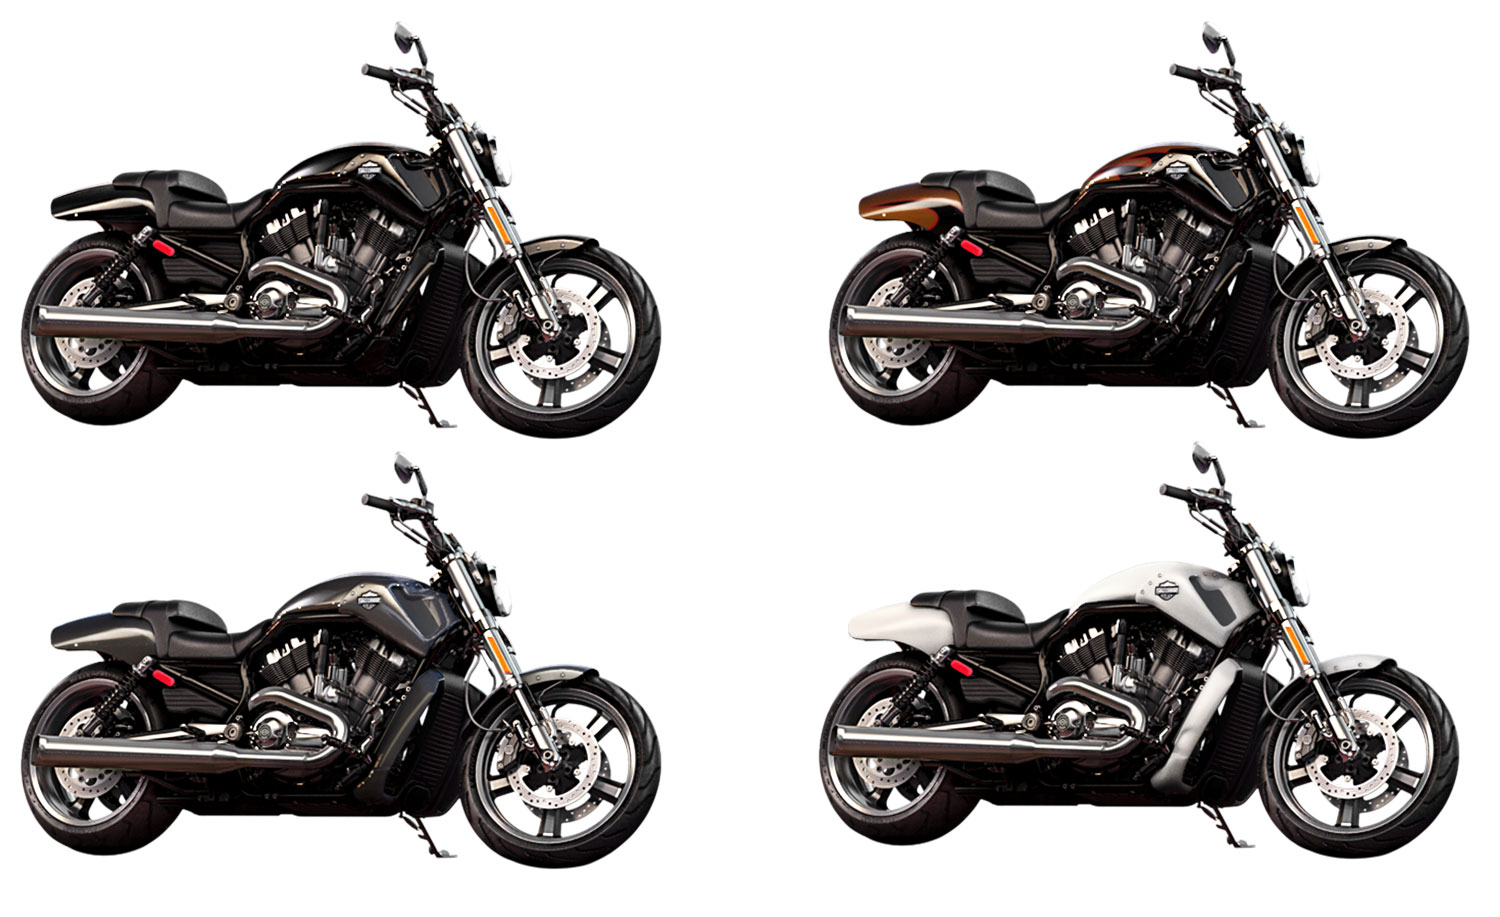 Back to 2014 harley davidson motorcycle model review page